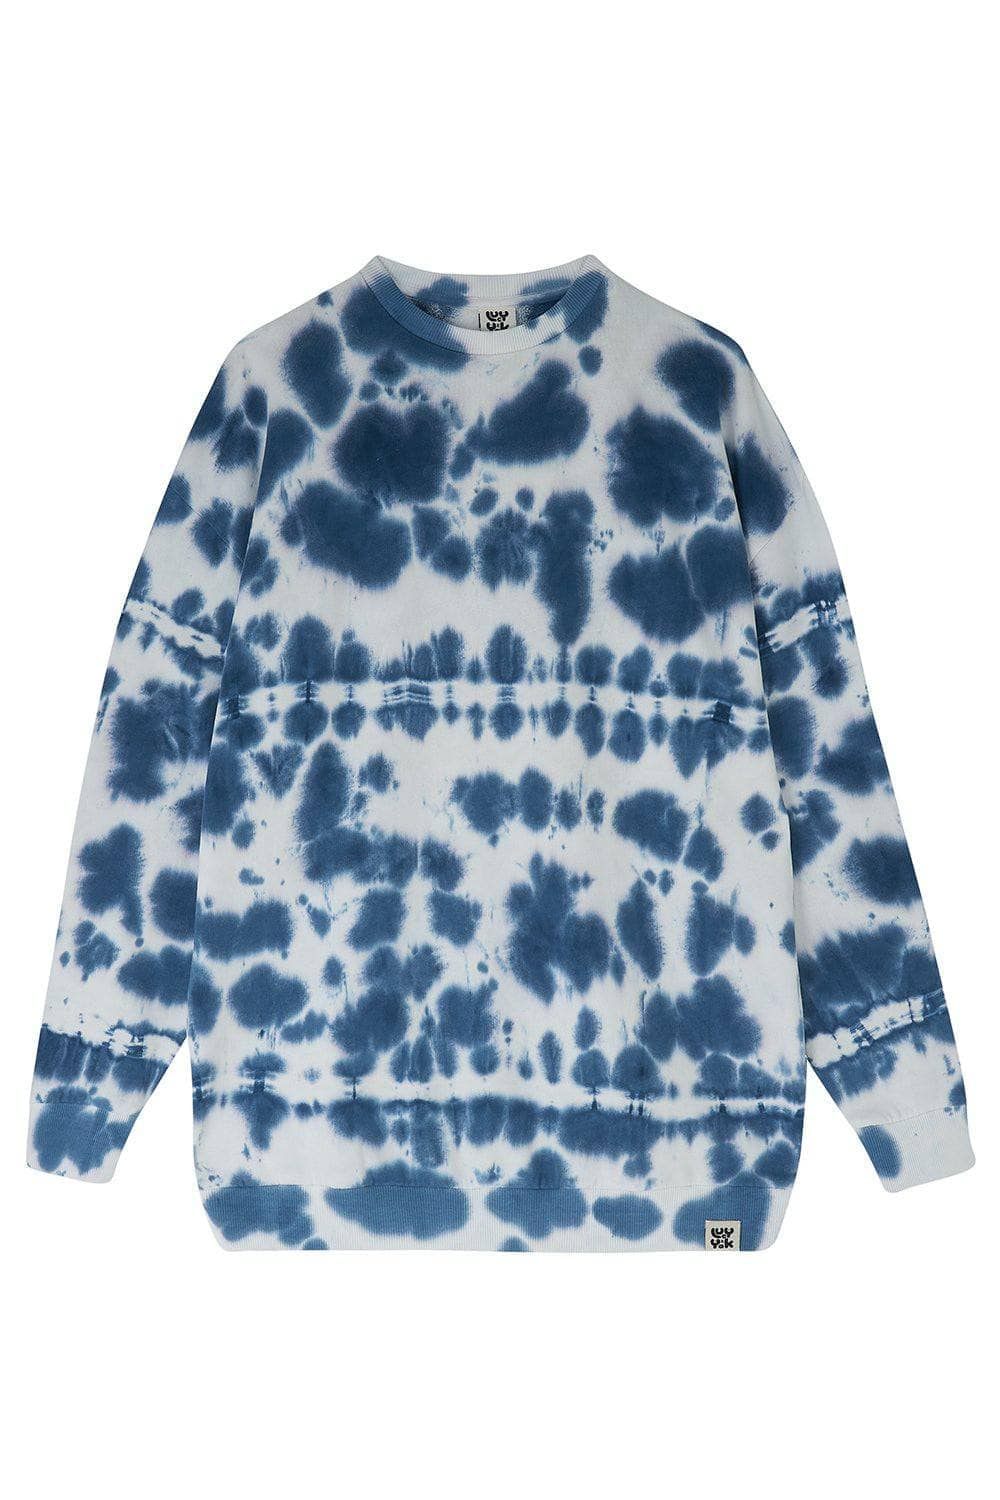 Lucy & Yak Sweatshirts Organic Cotton Sonny Sweater in Indigo Tie-Dye